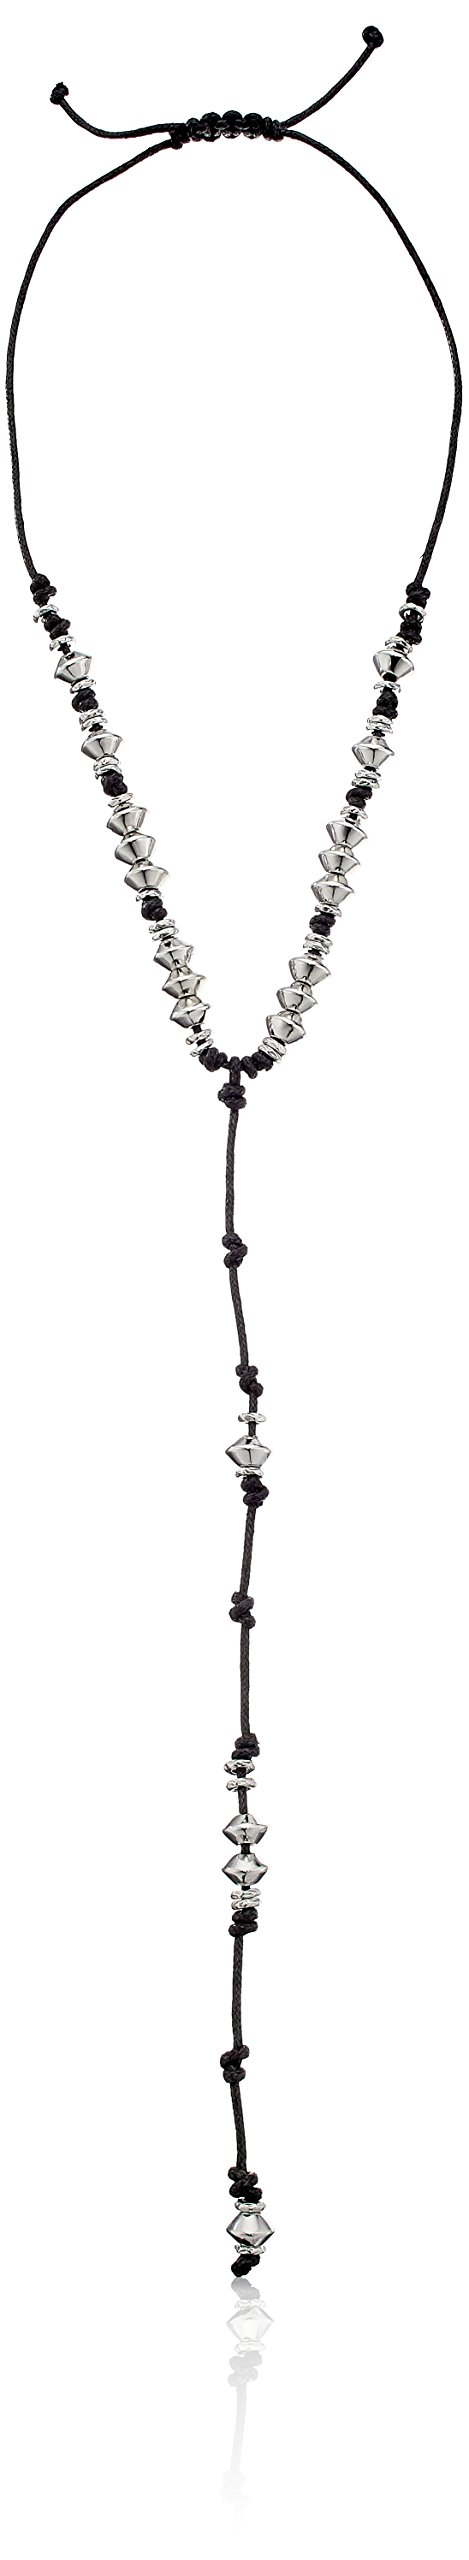 Sam Edelman Knotted Rhodium Bead Y-Shaped Necklace, 29''